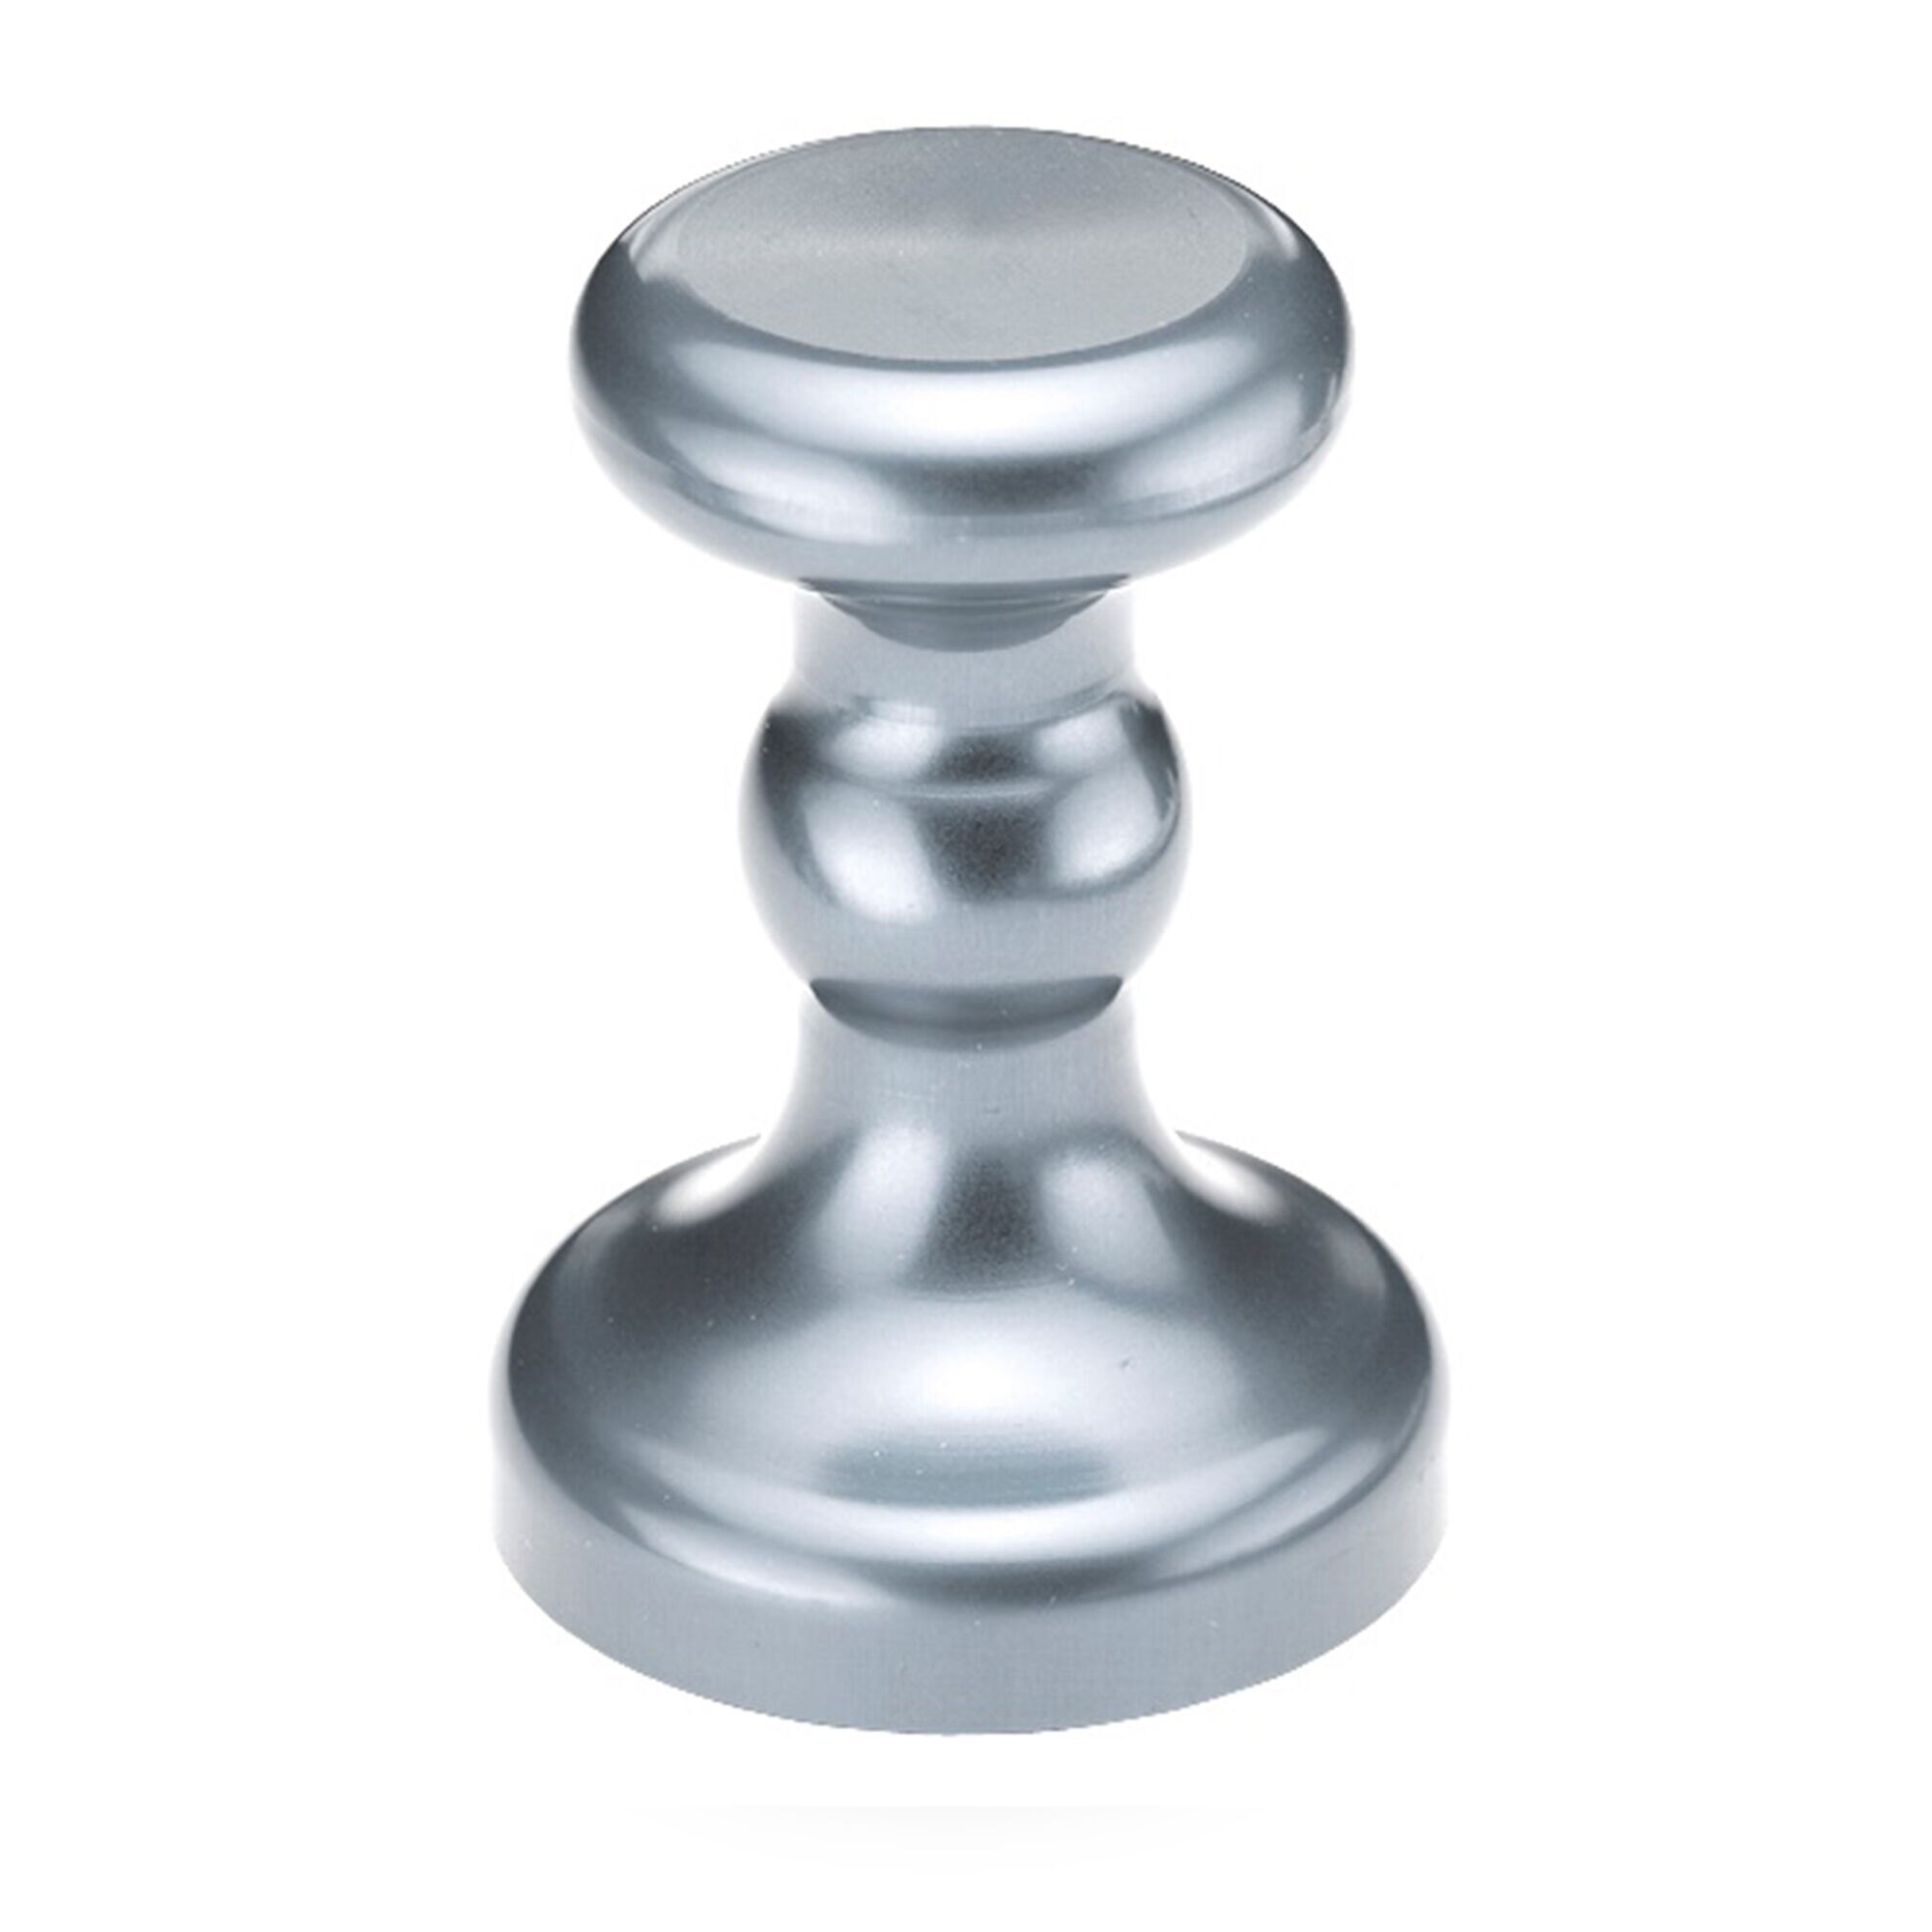 illy Espresso Tampers